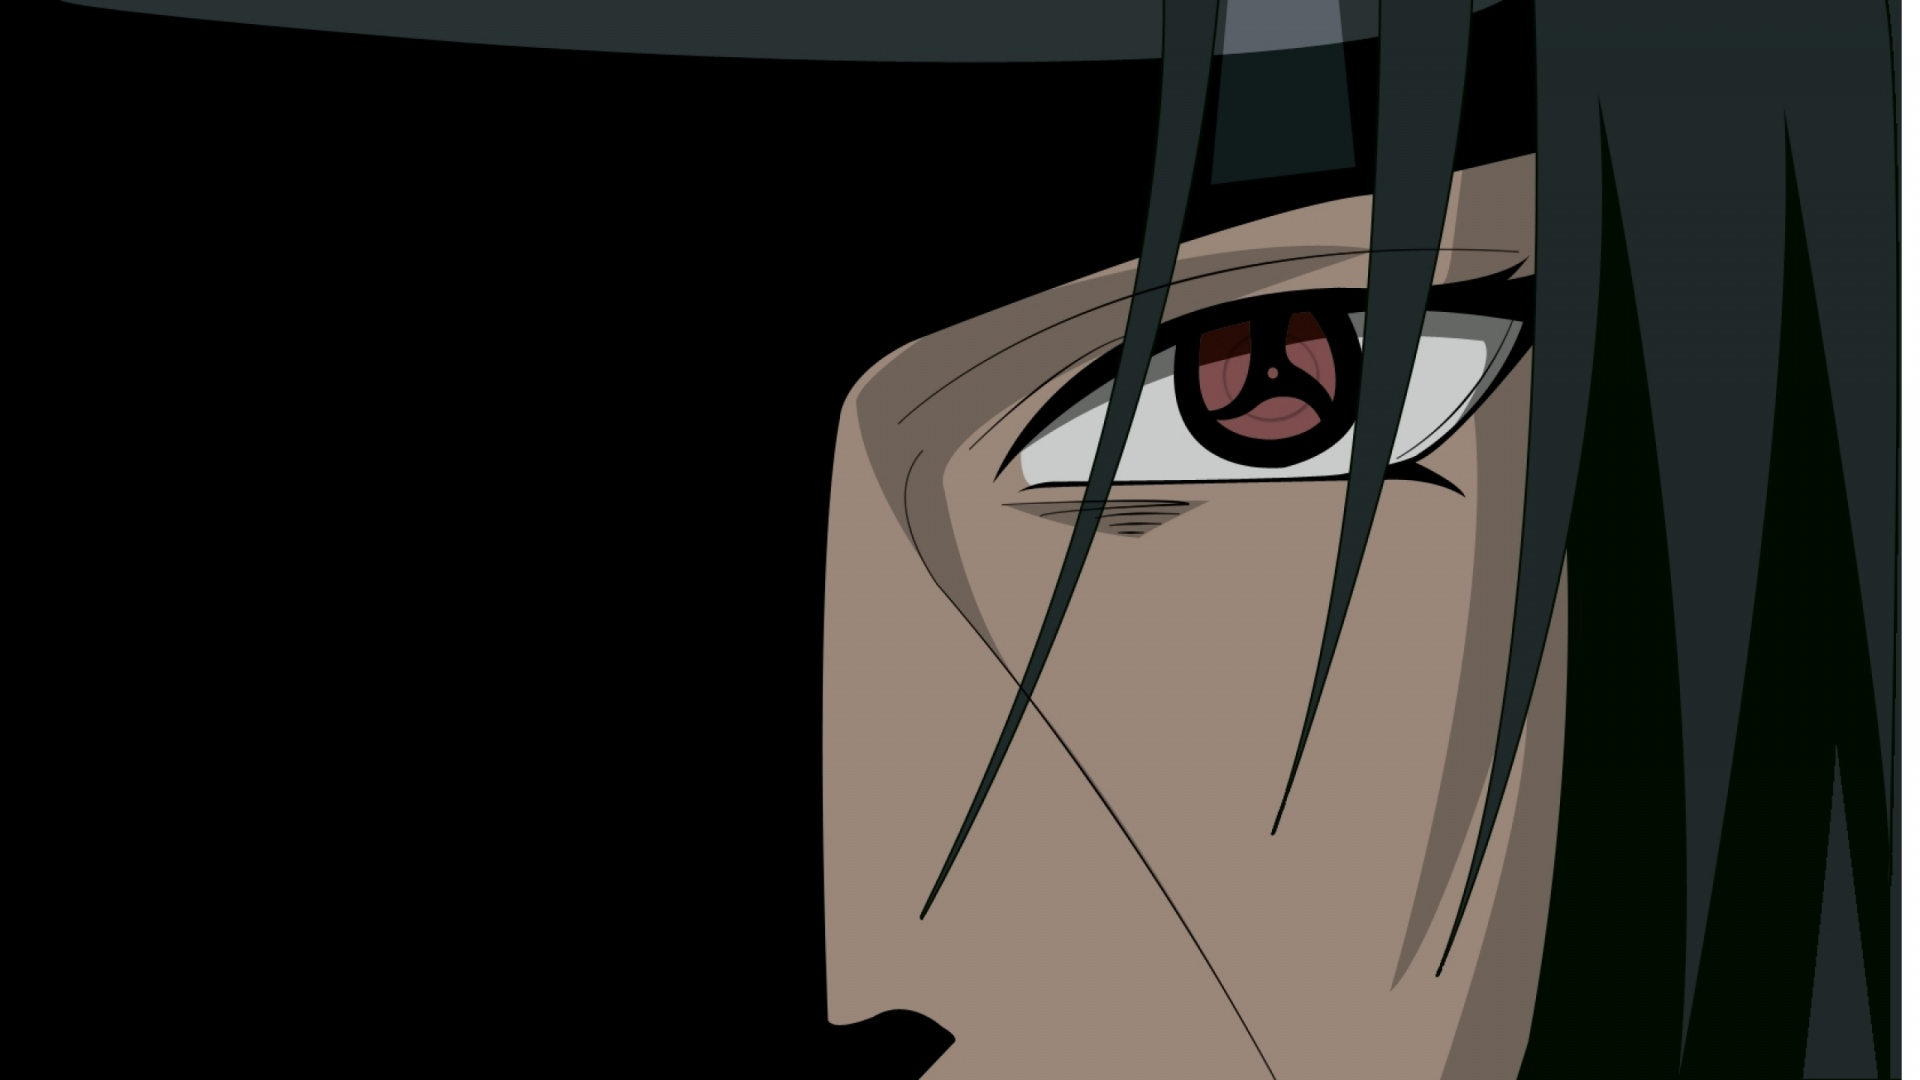 1920x1080-naruto-akatsuki-uchiha-guy-bangs-close-up-wallpaper-wpc5801024